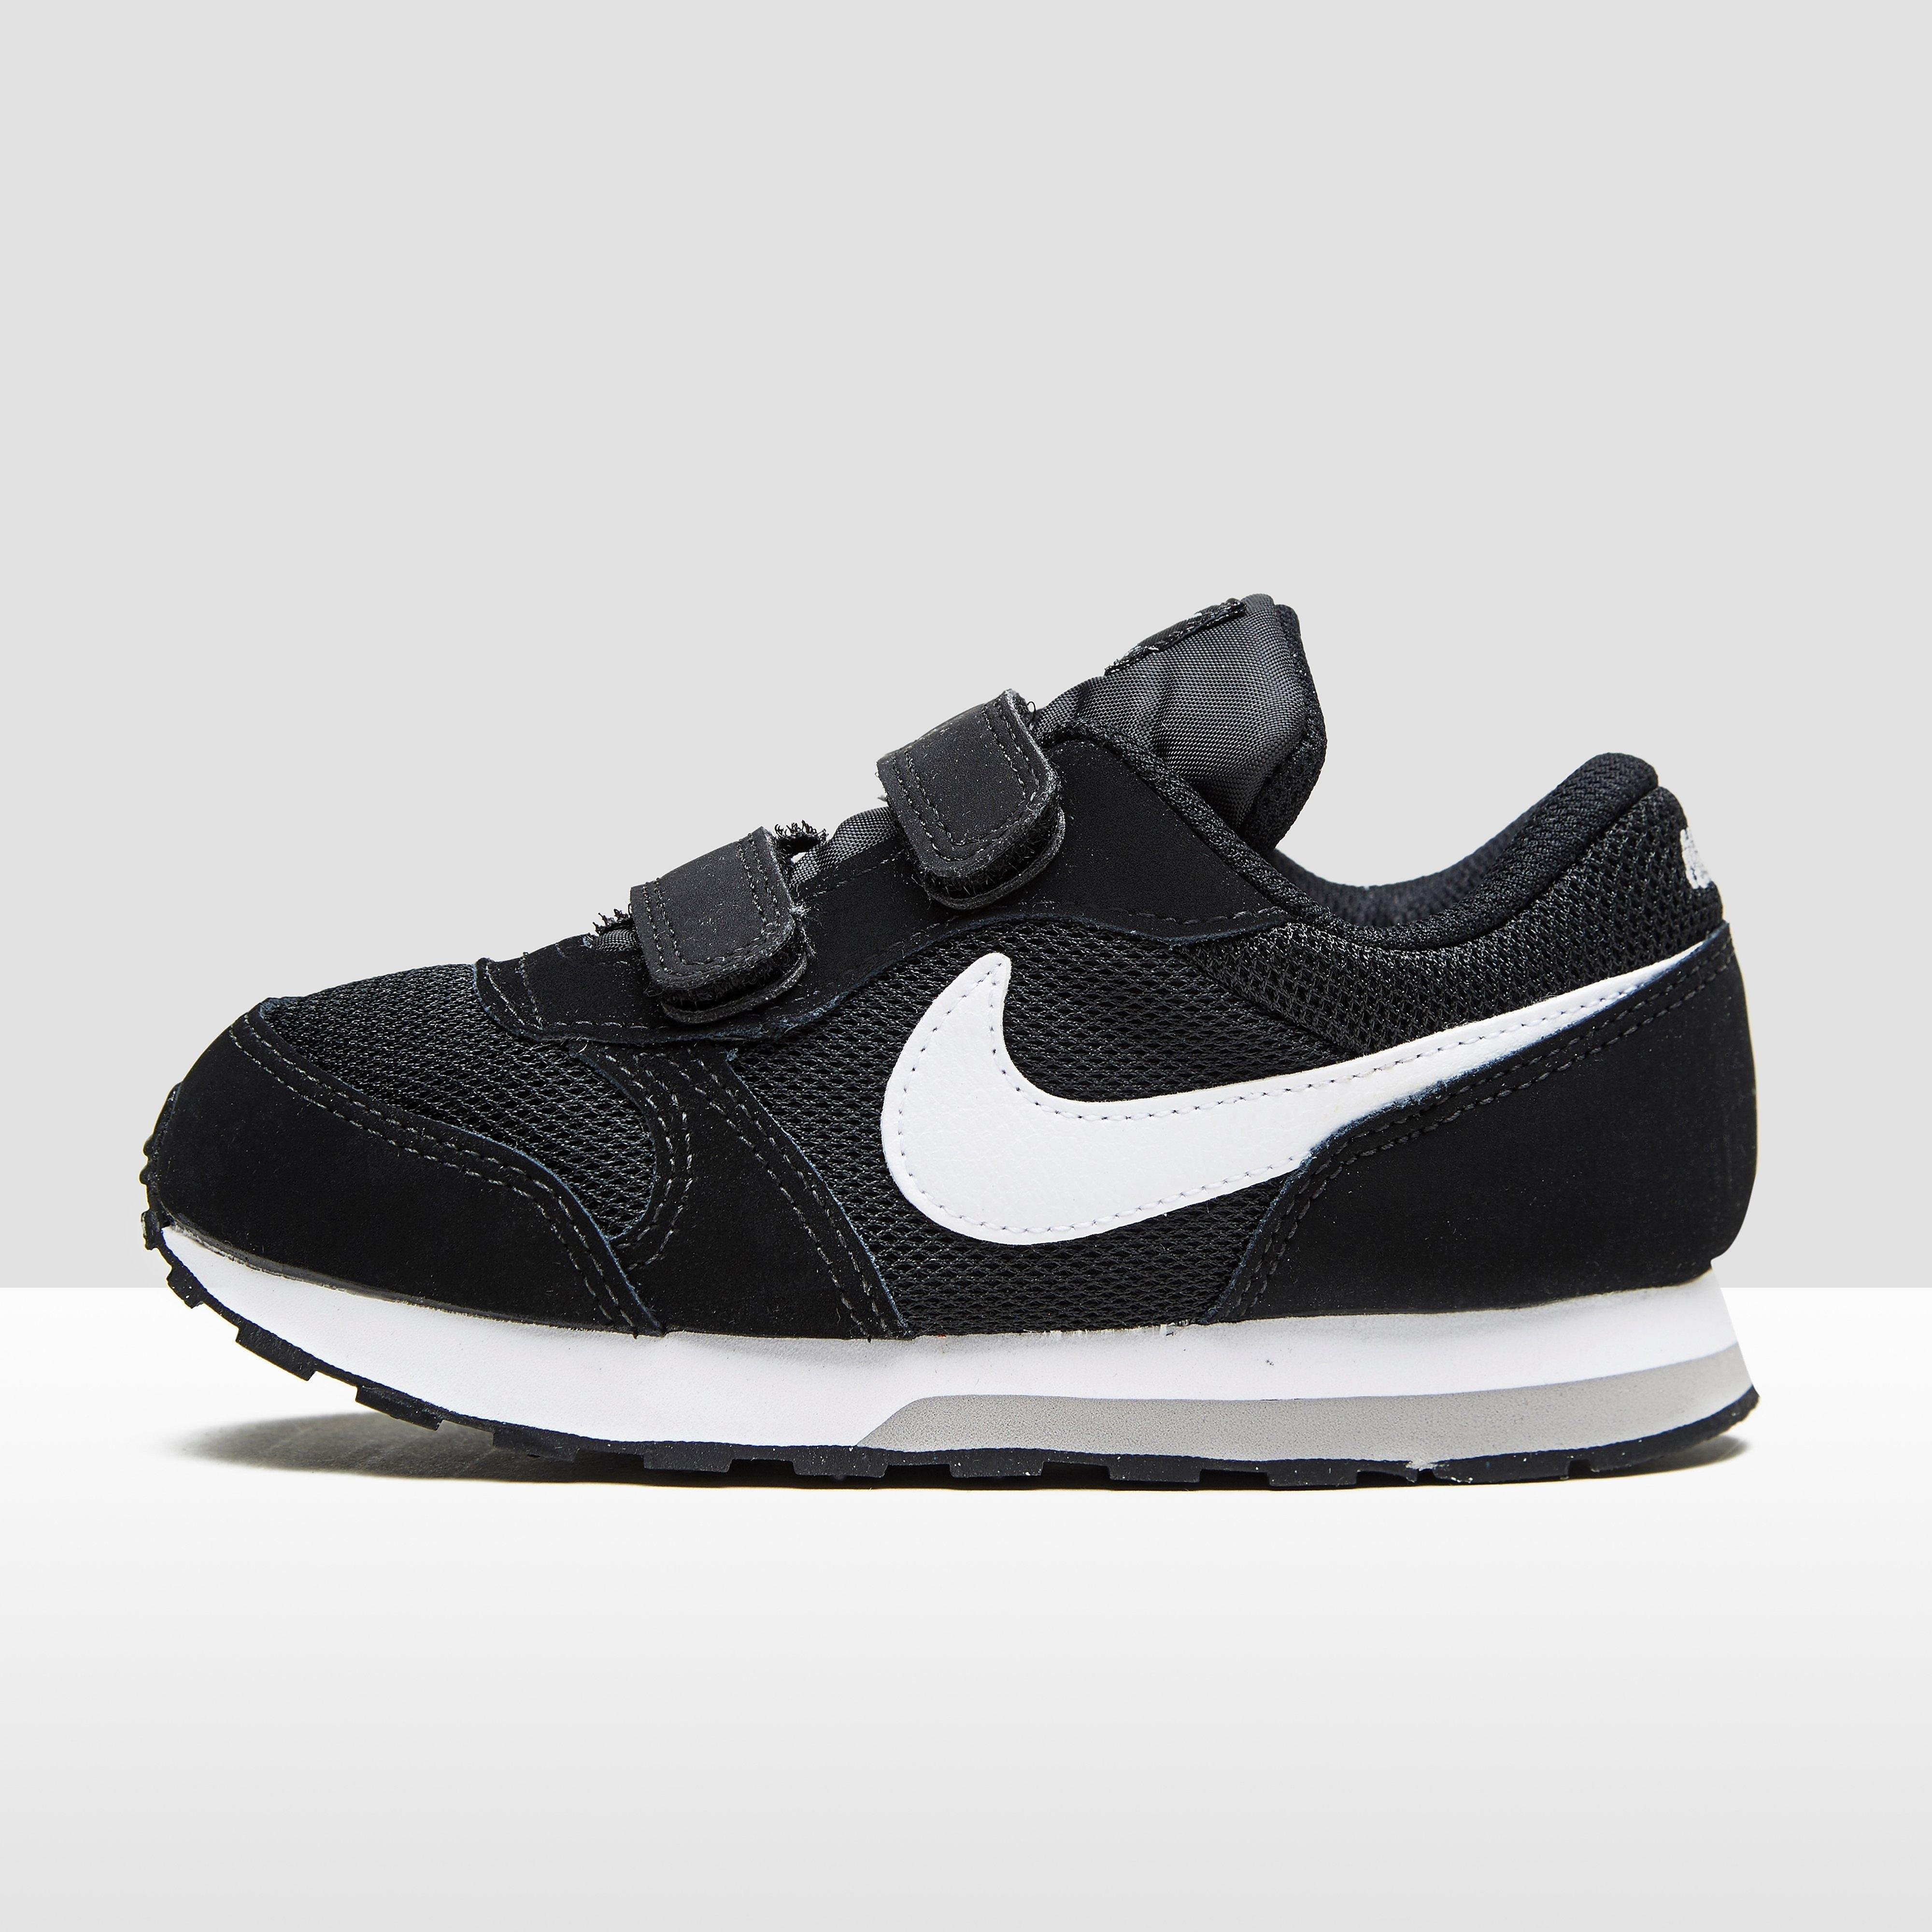 0888cf0a4e8 Md Runner 2 Sneakers Zwart-Wit Baby Black-White. Size 22. Md runner 2 sneakers  zwart baby € 34.99 bij Aktiesport · sneakers Nike air max invigor (td)  749574 ...